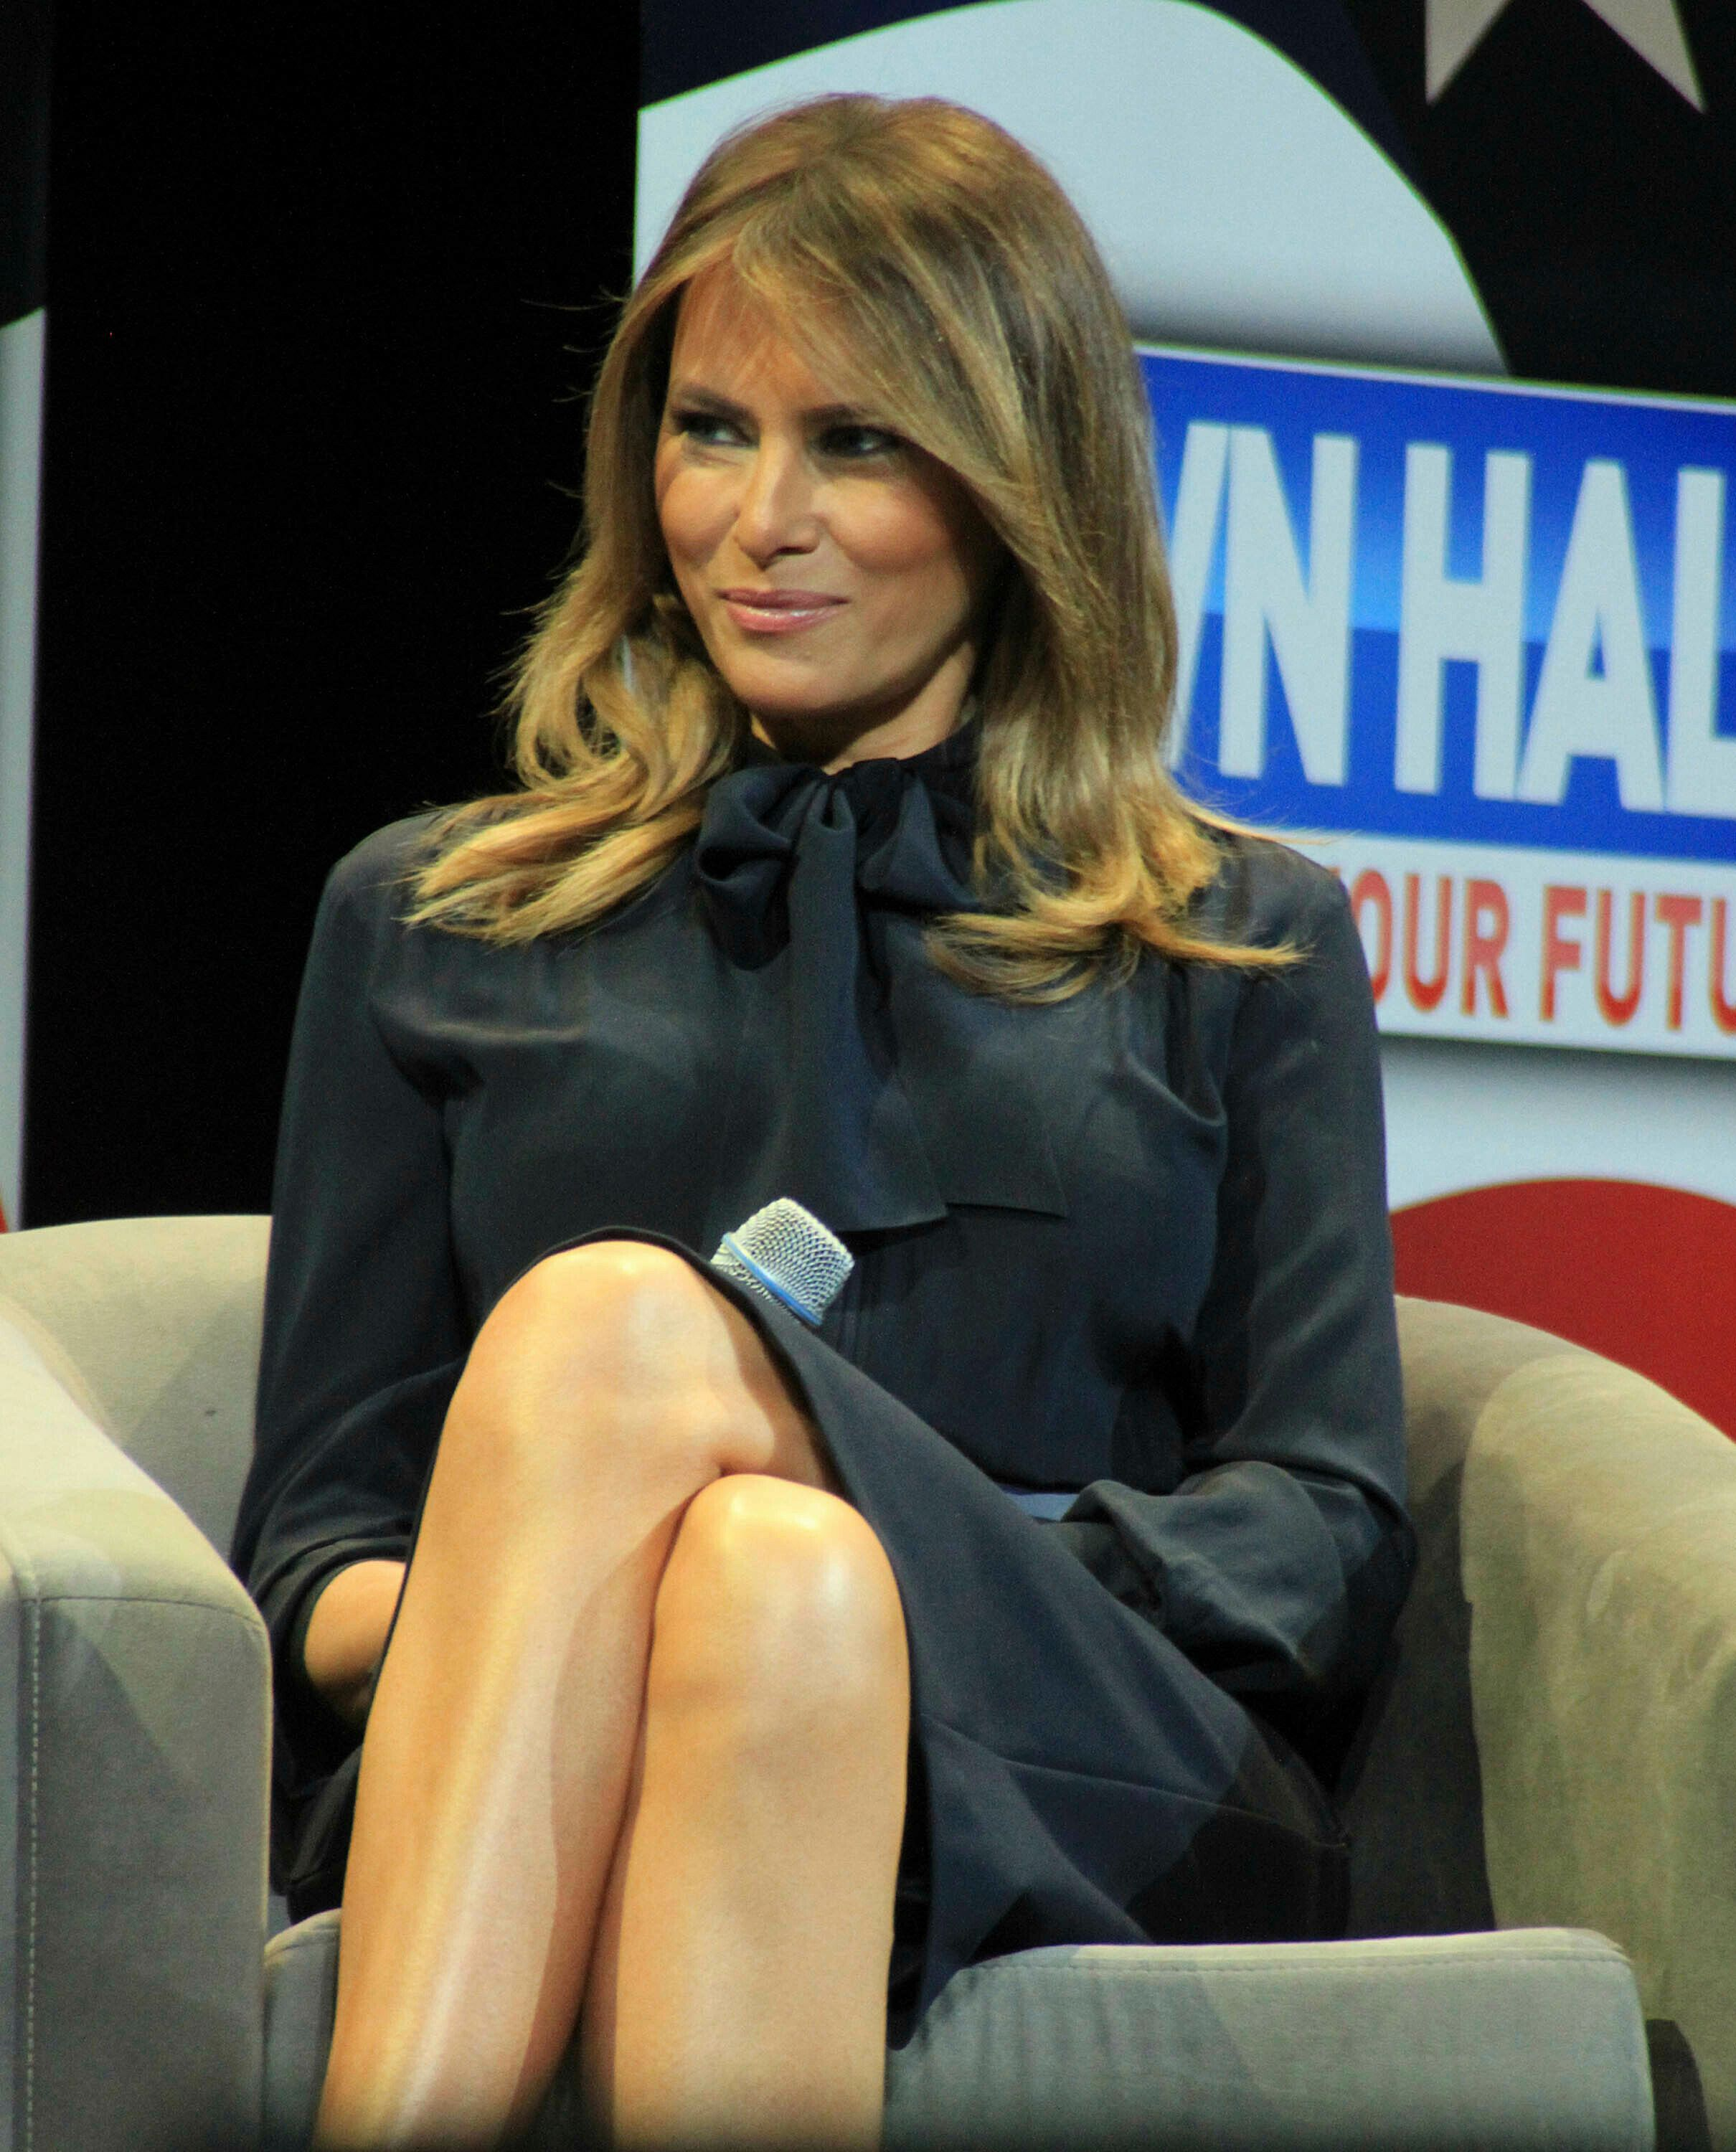 """Photo by: Raoul Gatchalian/STAR MAX/IPx 2019 3/5/19 Melania Trump promotes her """"BE BEST"""" intiative at Westgate Casino Hotel in Las Vegas, Nevada."""